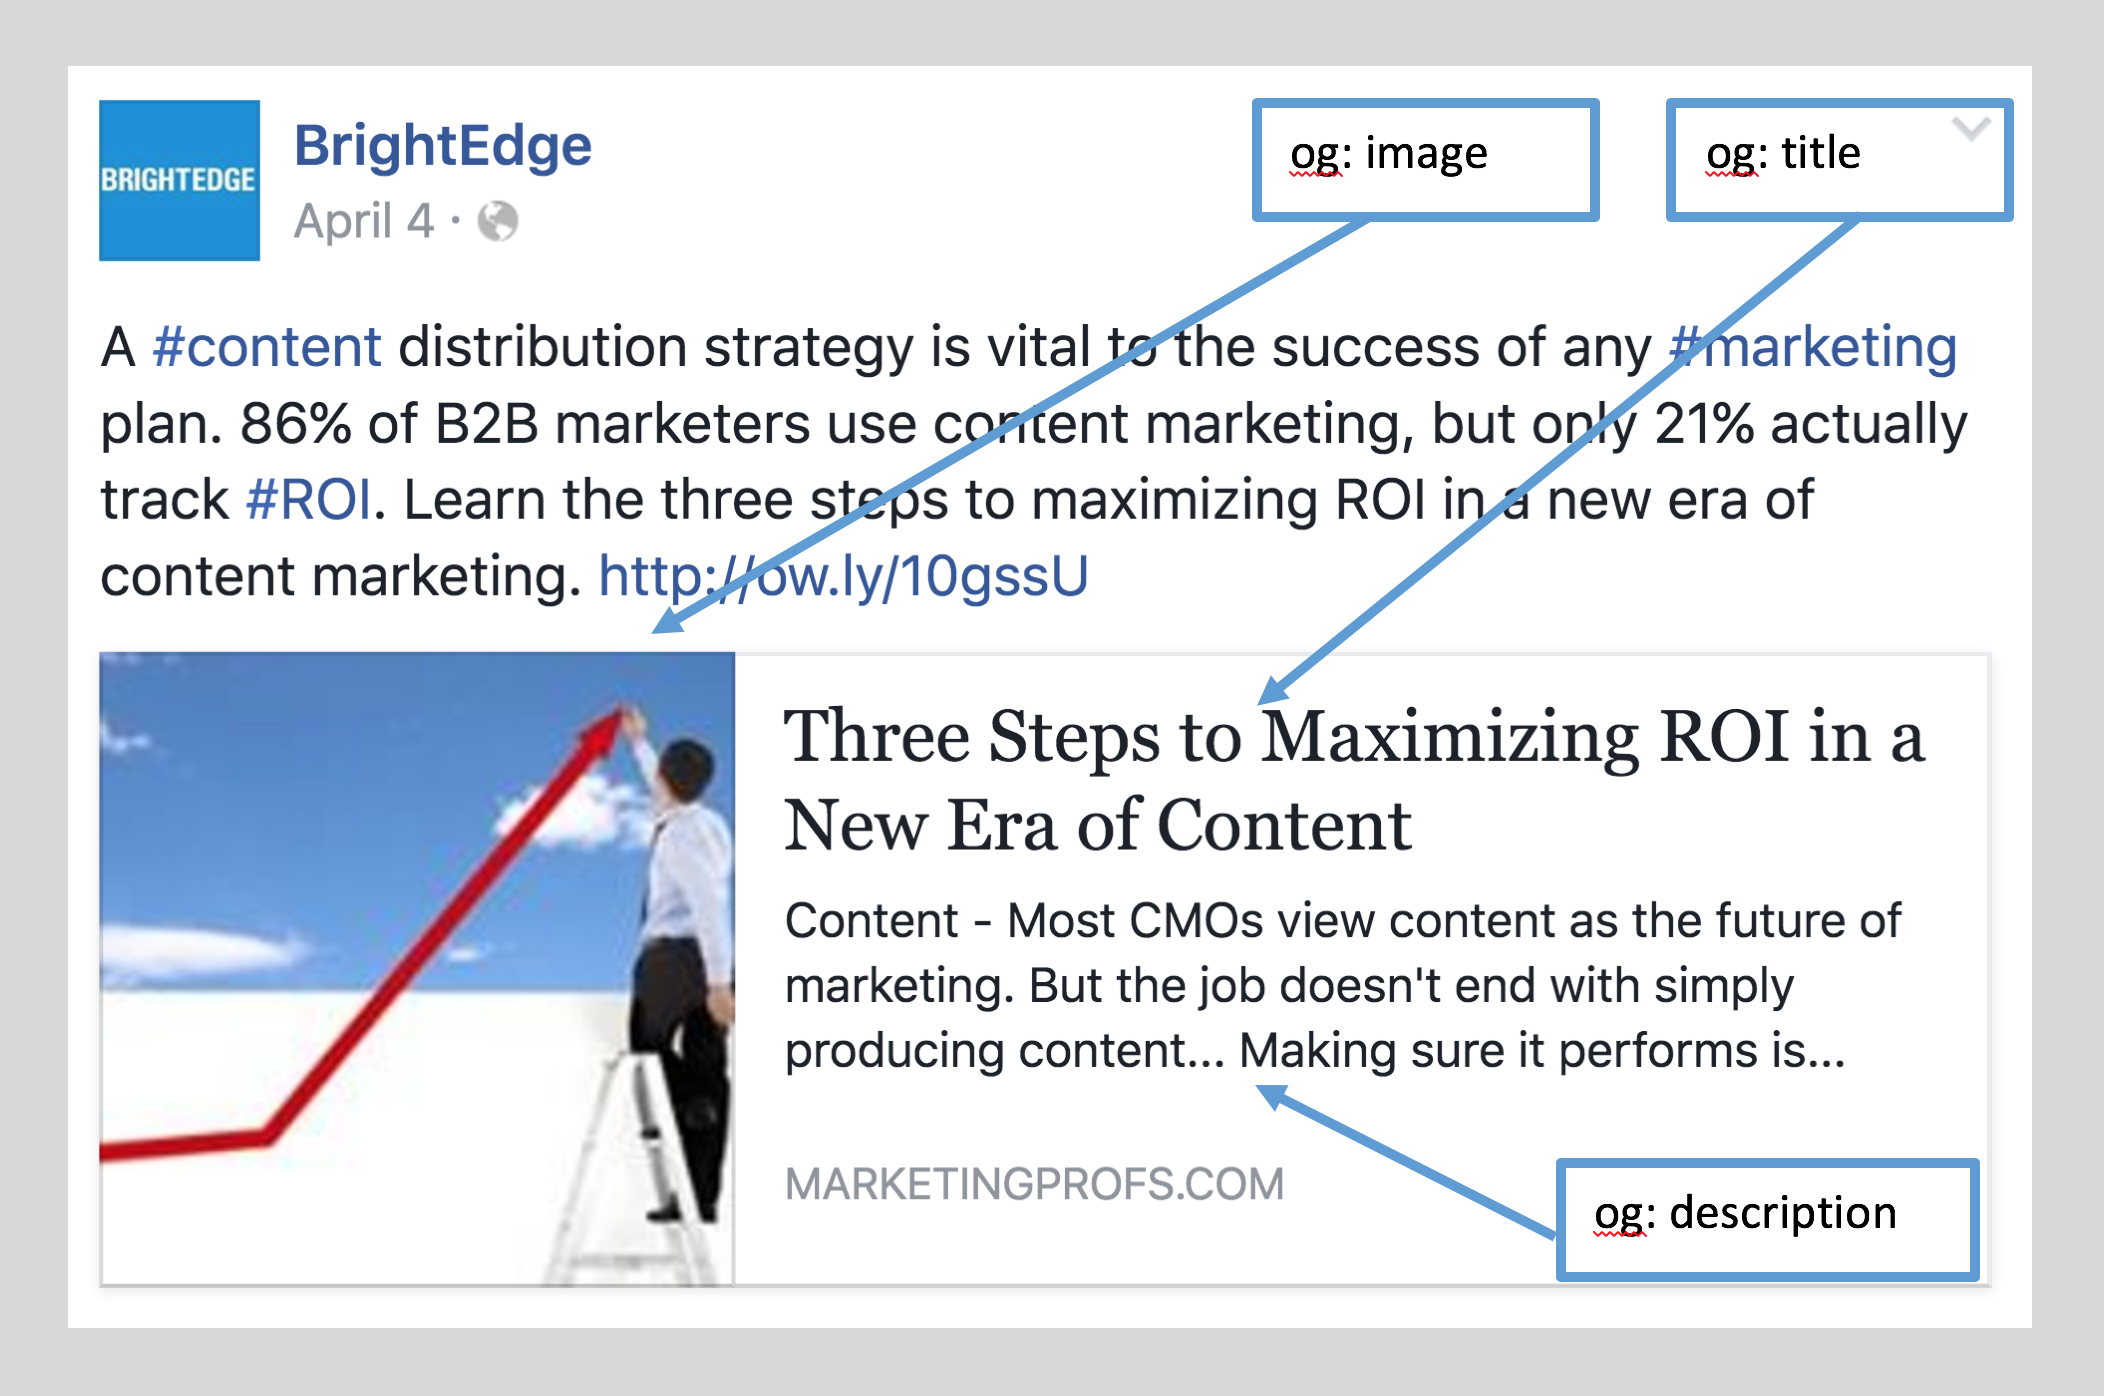 discover what a facebook marketing open graph looks like - brightedge